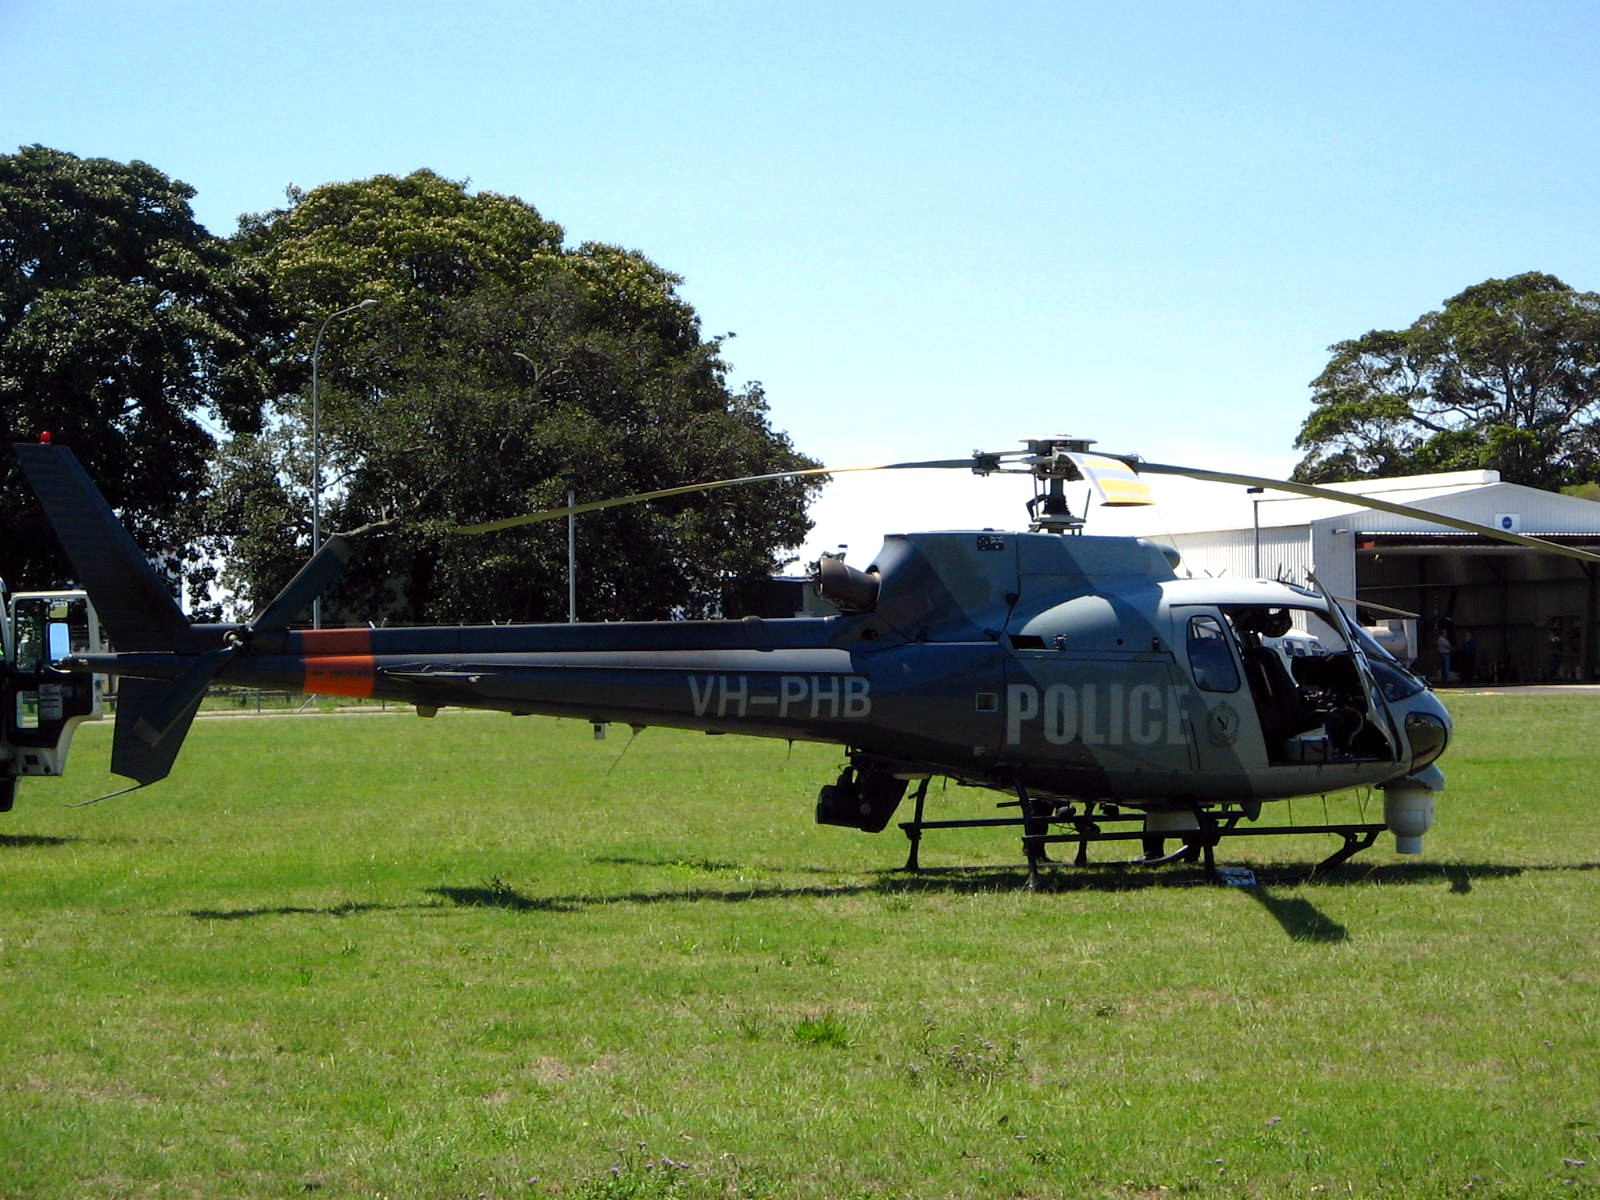 File:NSW Police Air Wing AS 350B Squirrel - Flickr - Highway Patrol